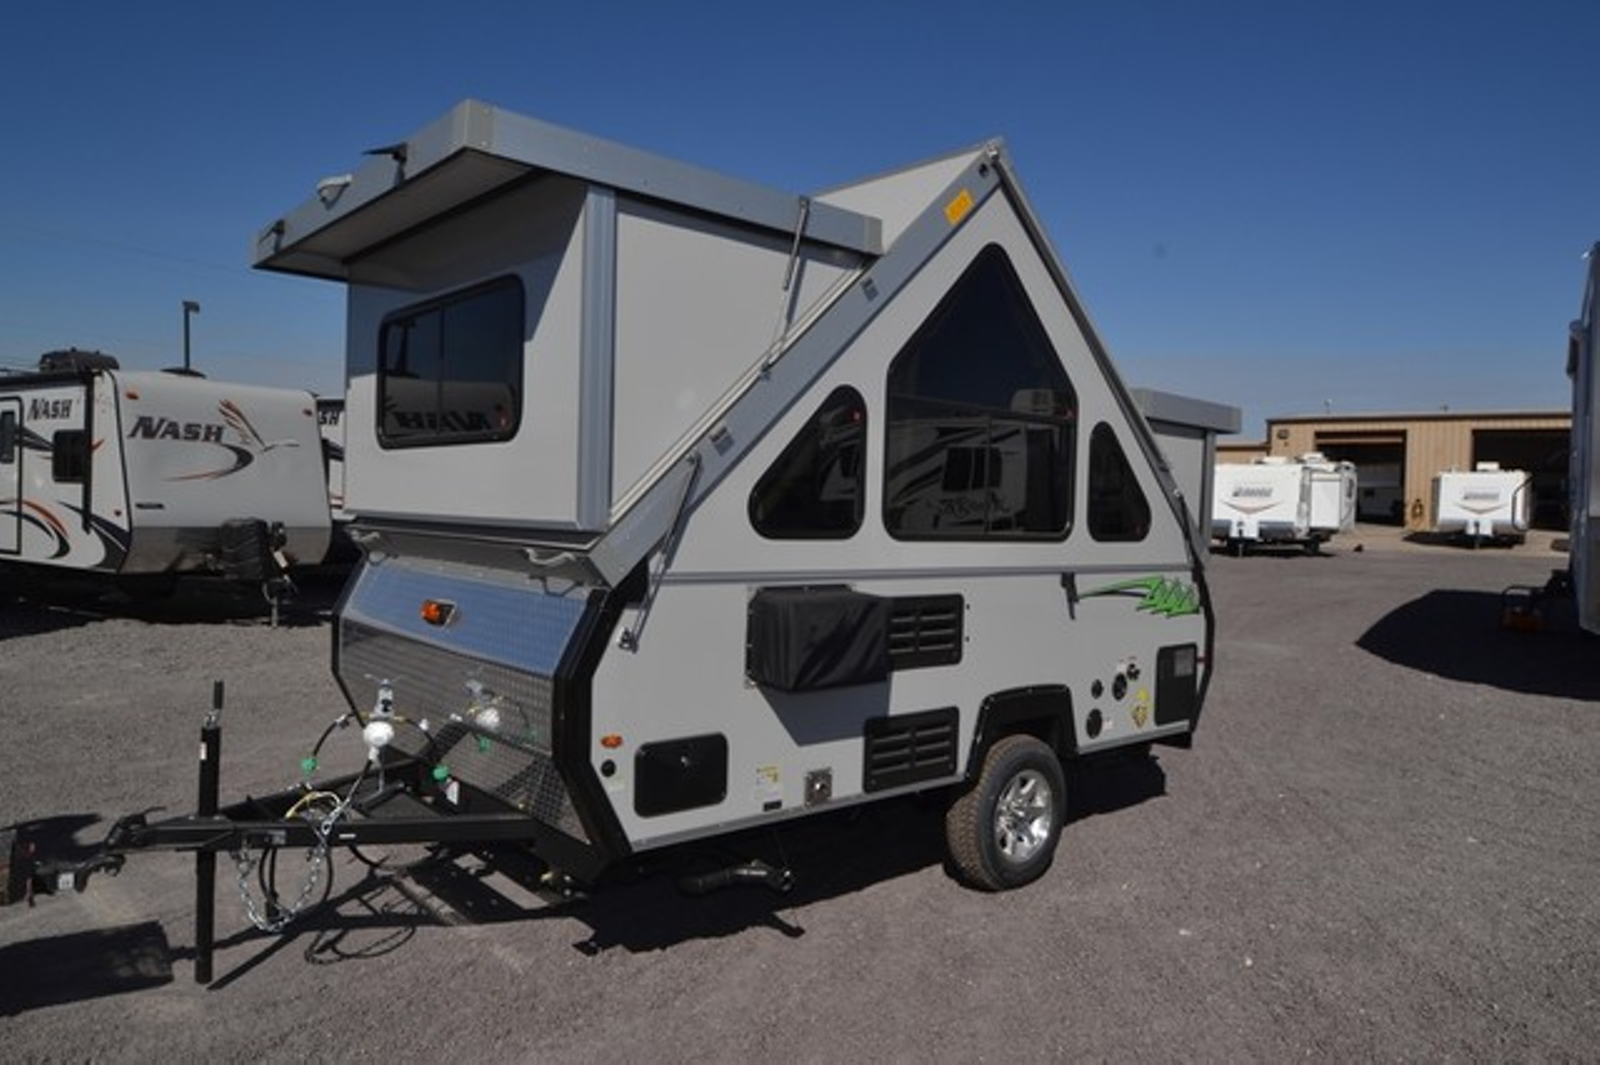 Ford Focus Camper >> Rv Price Checker And Nadaguides Rv Values Search Rvtcom | Autos Post